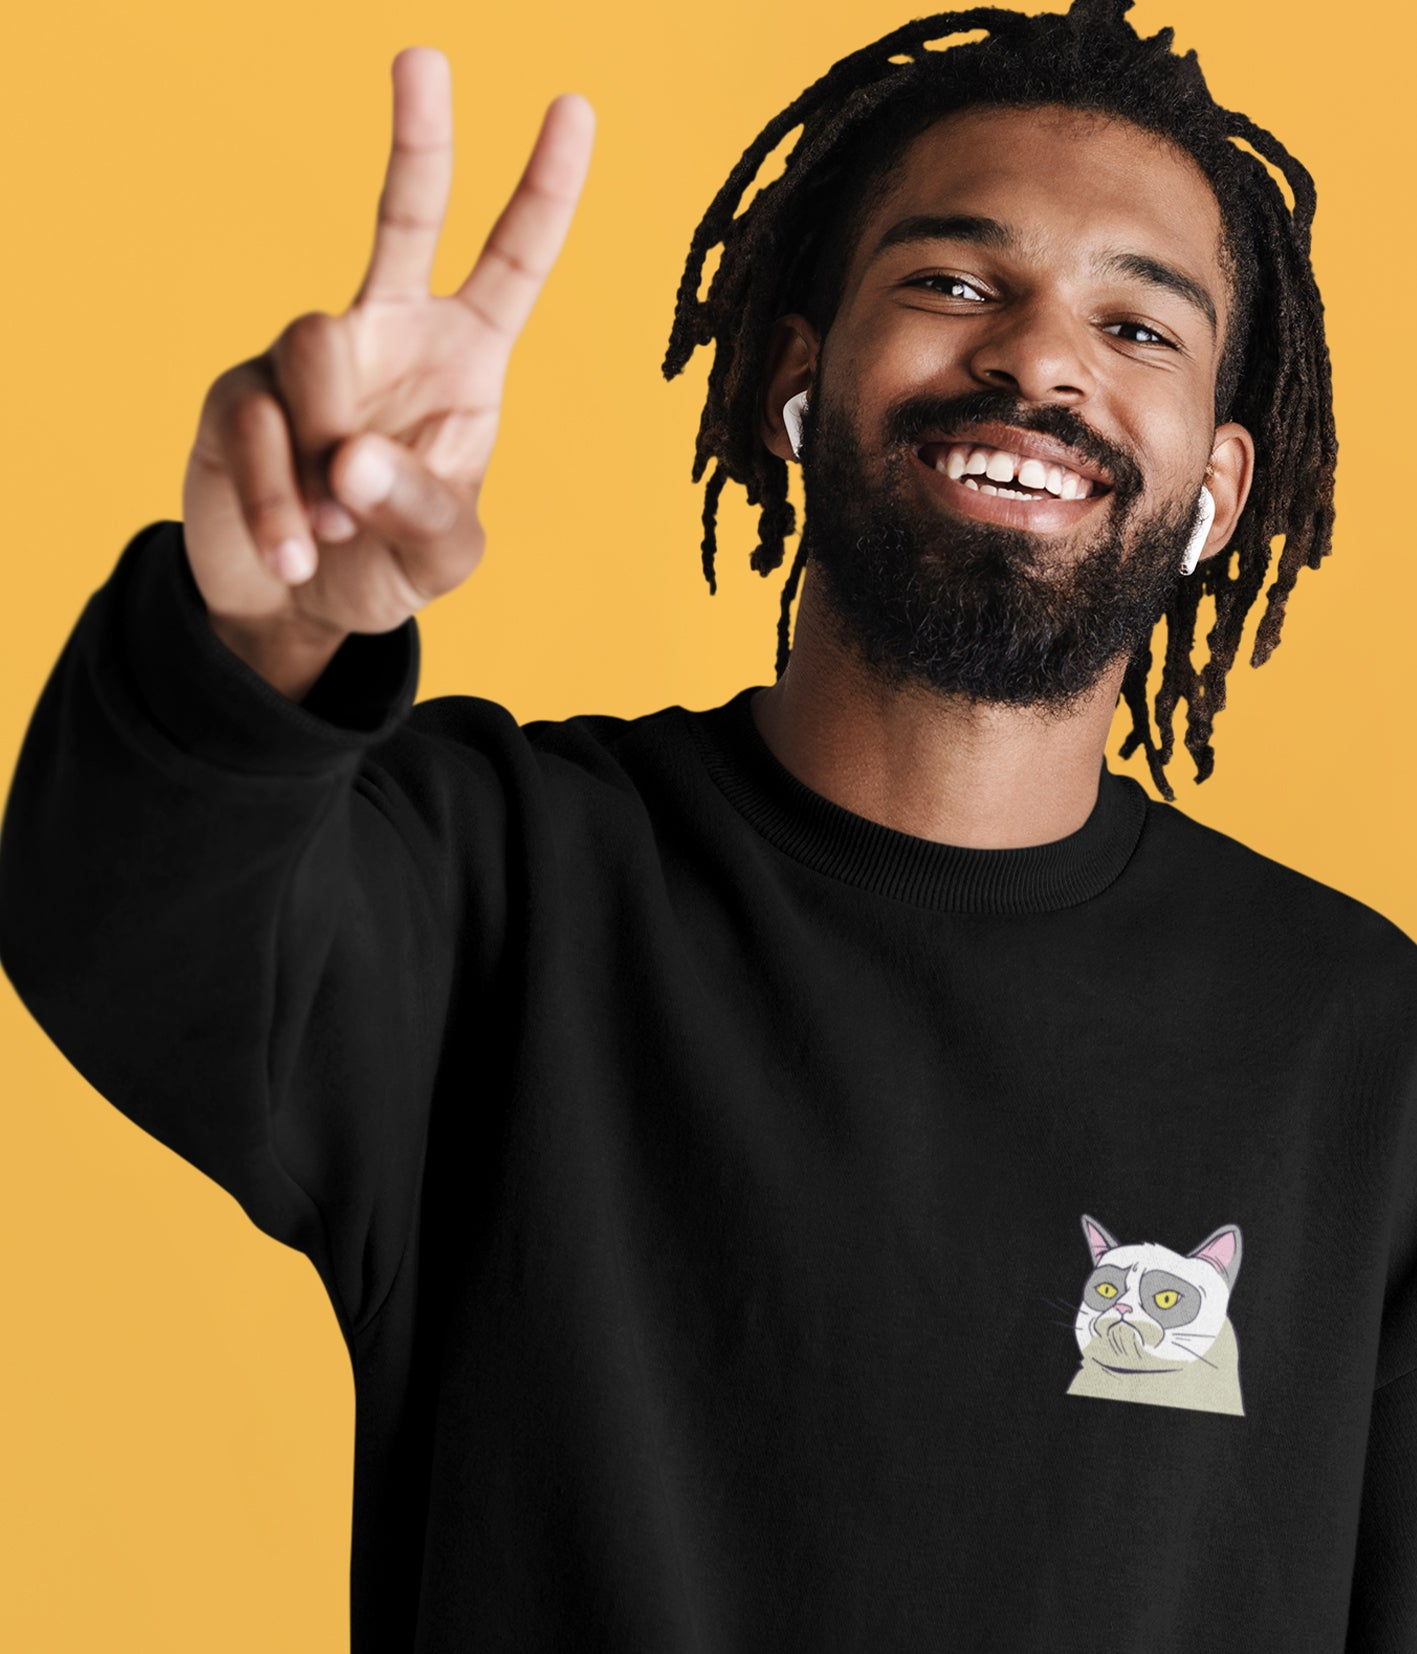 Cat Meme Sweatshirt